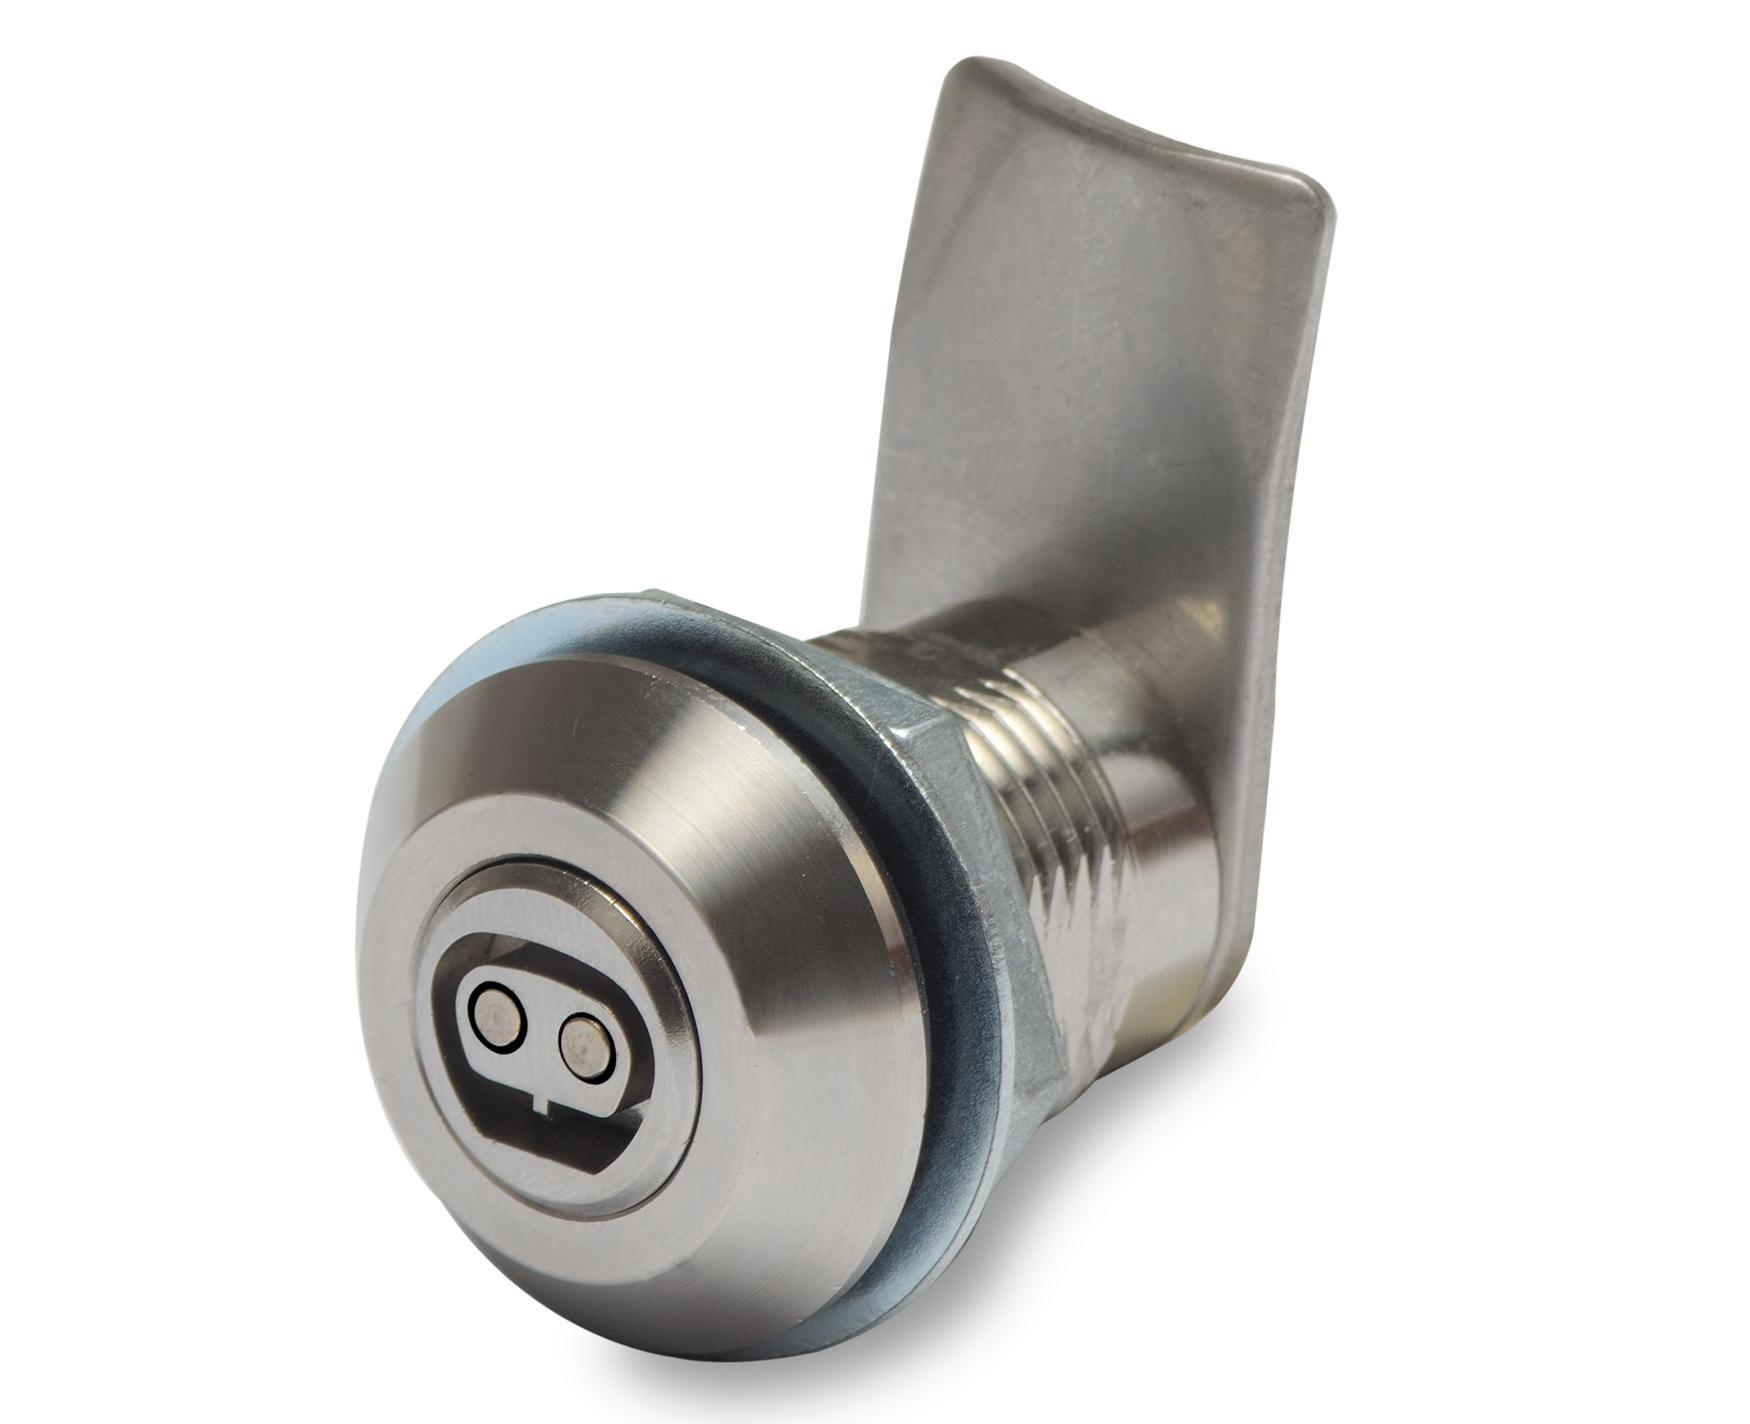 Machatronic Cam Lock for Industrial Application